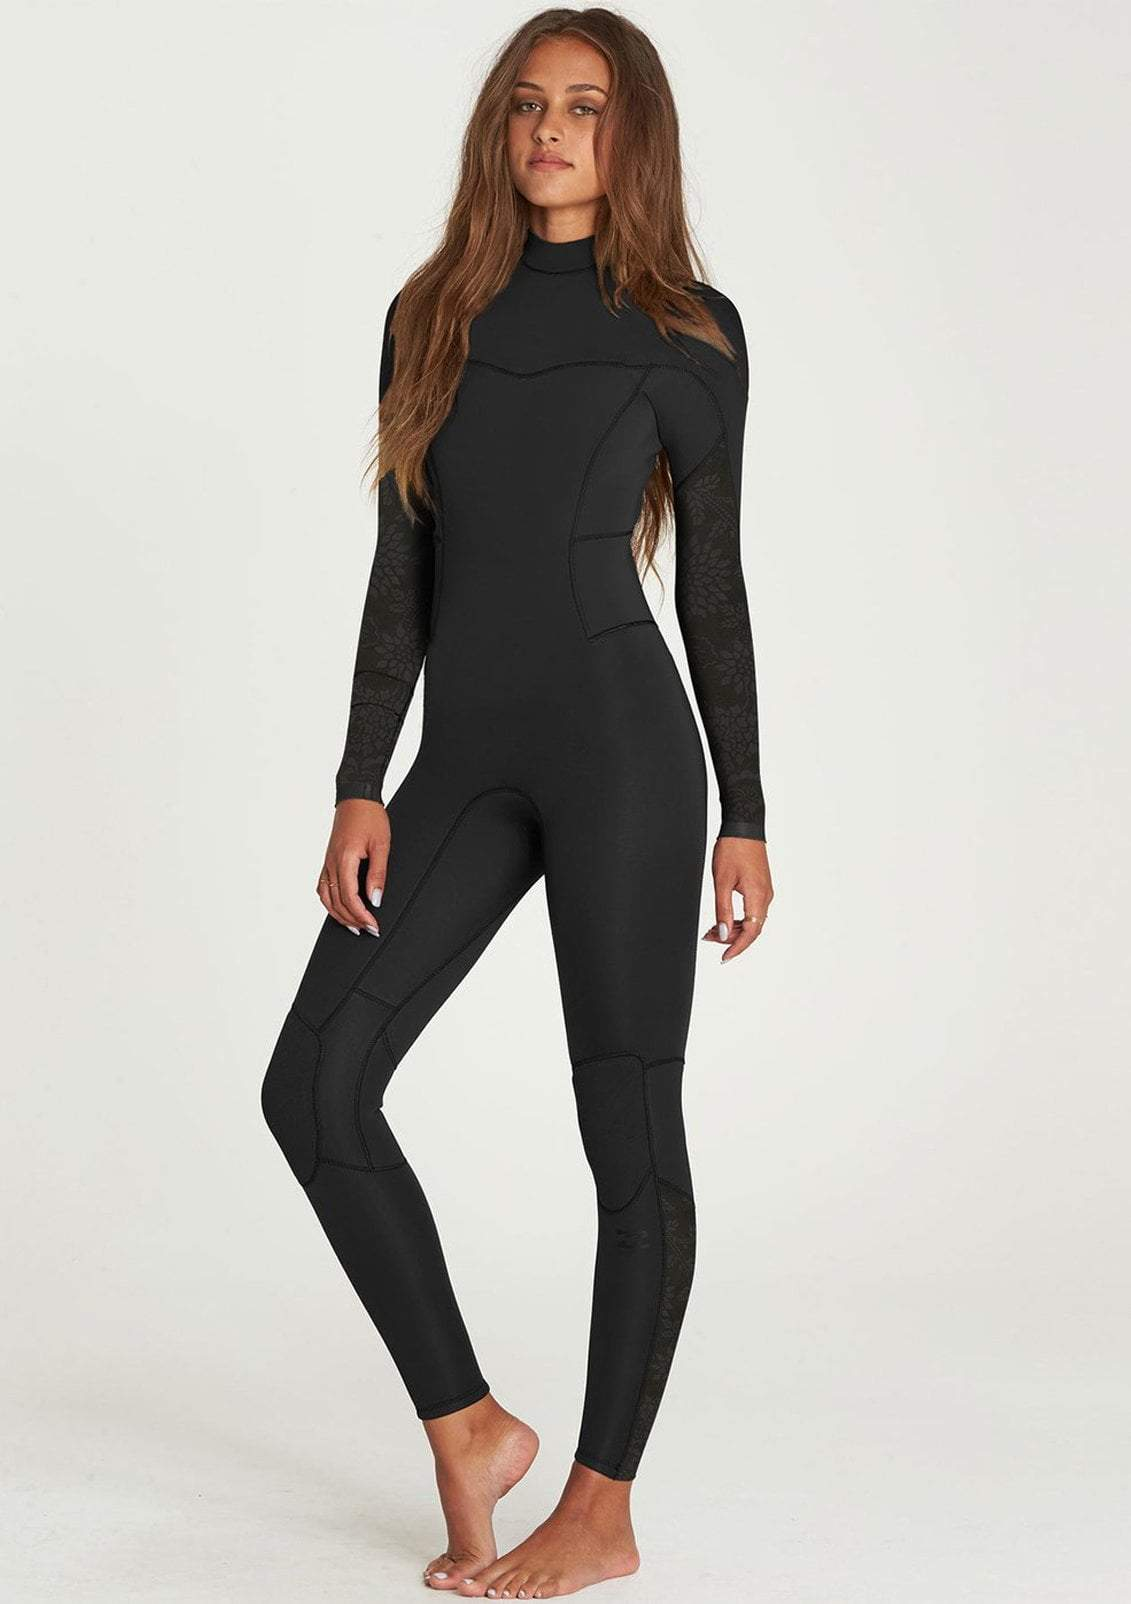 bc1cfb13b0 Billabong Women s 4 3 Synergy Back Zip Wetsuit – Jacks Surfboards